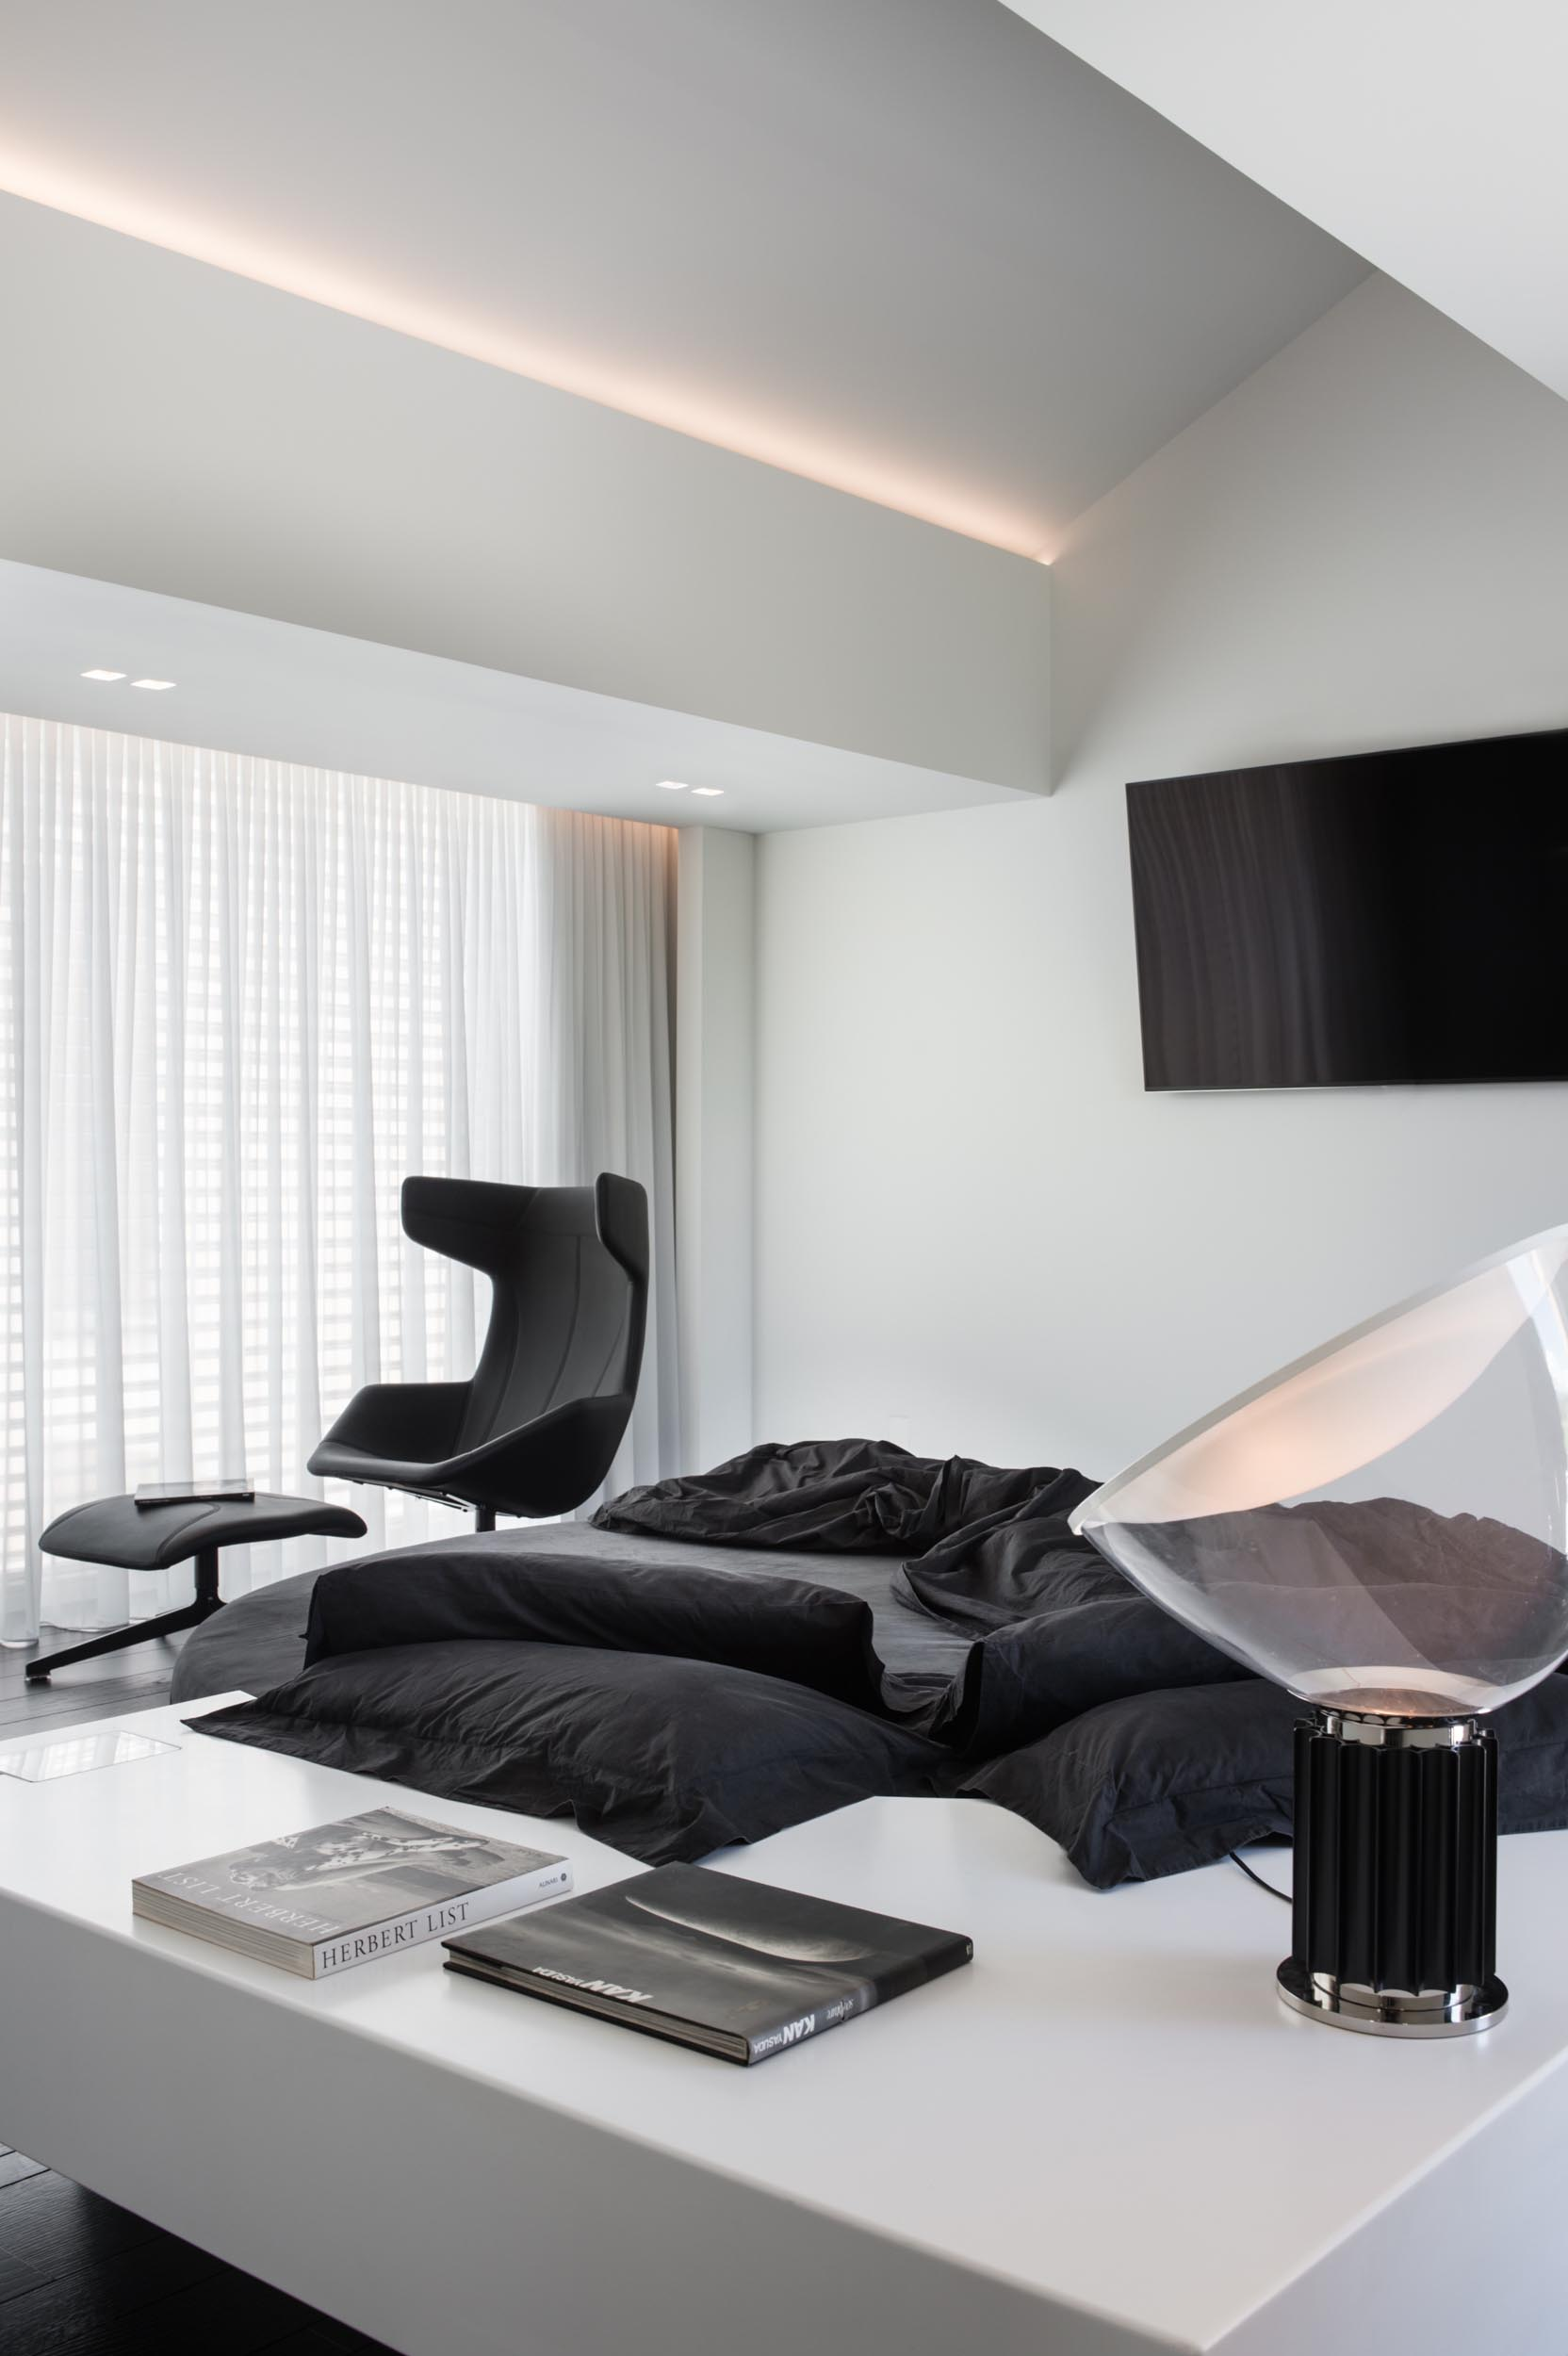 A modern bedroom with a black and white color theme.